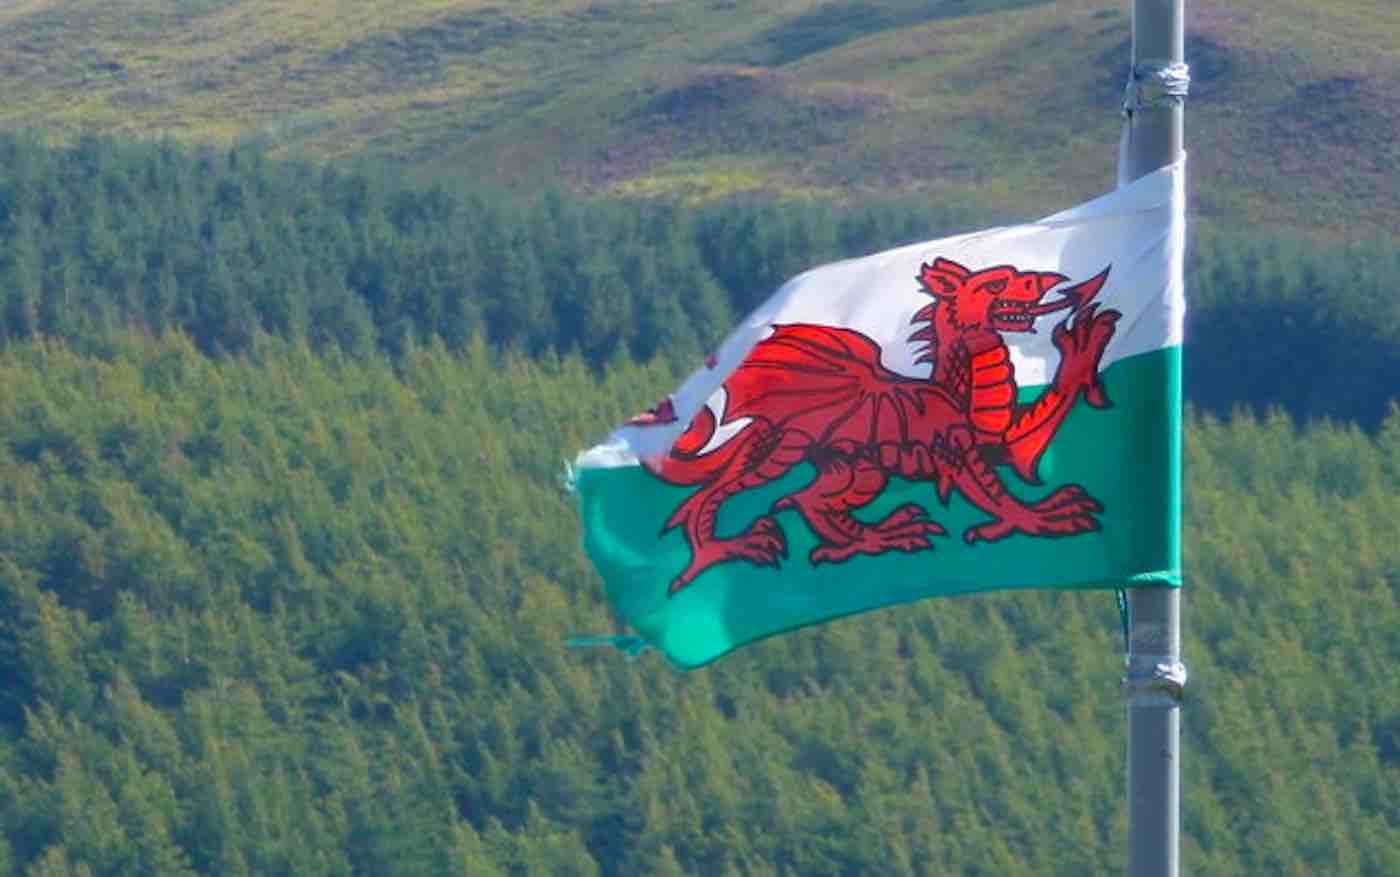 C:\Users\Alejandro\AppData\Local\Microsoft\Windows\INetCache\Content.Word\Welsh-Flag-of-Wales-CC-Chris-Downer-via-Geograph-dot-org-dot-uk.jpg